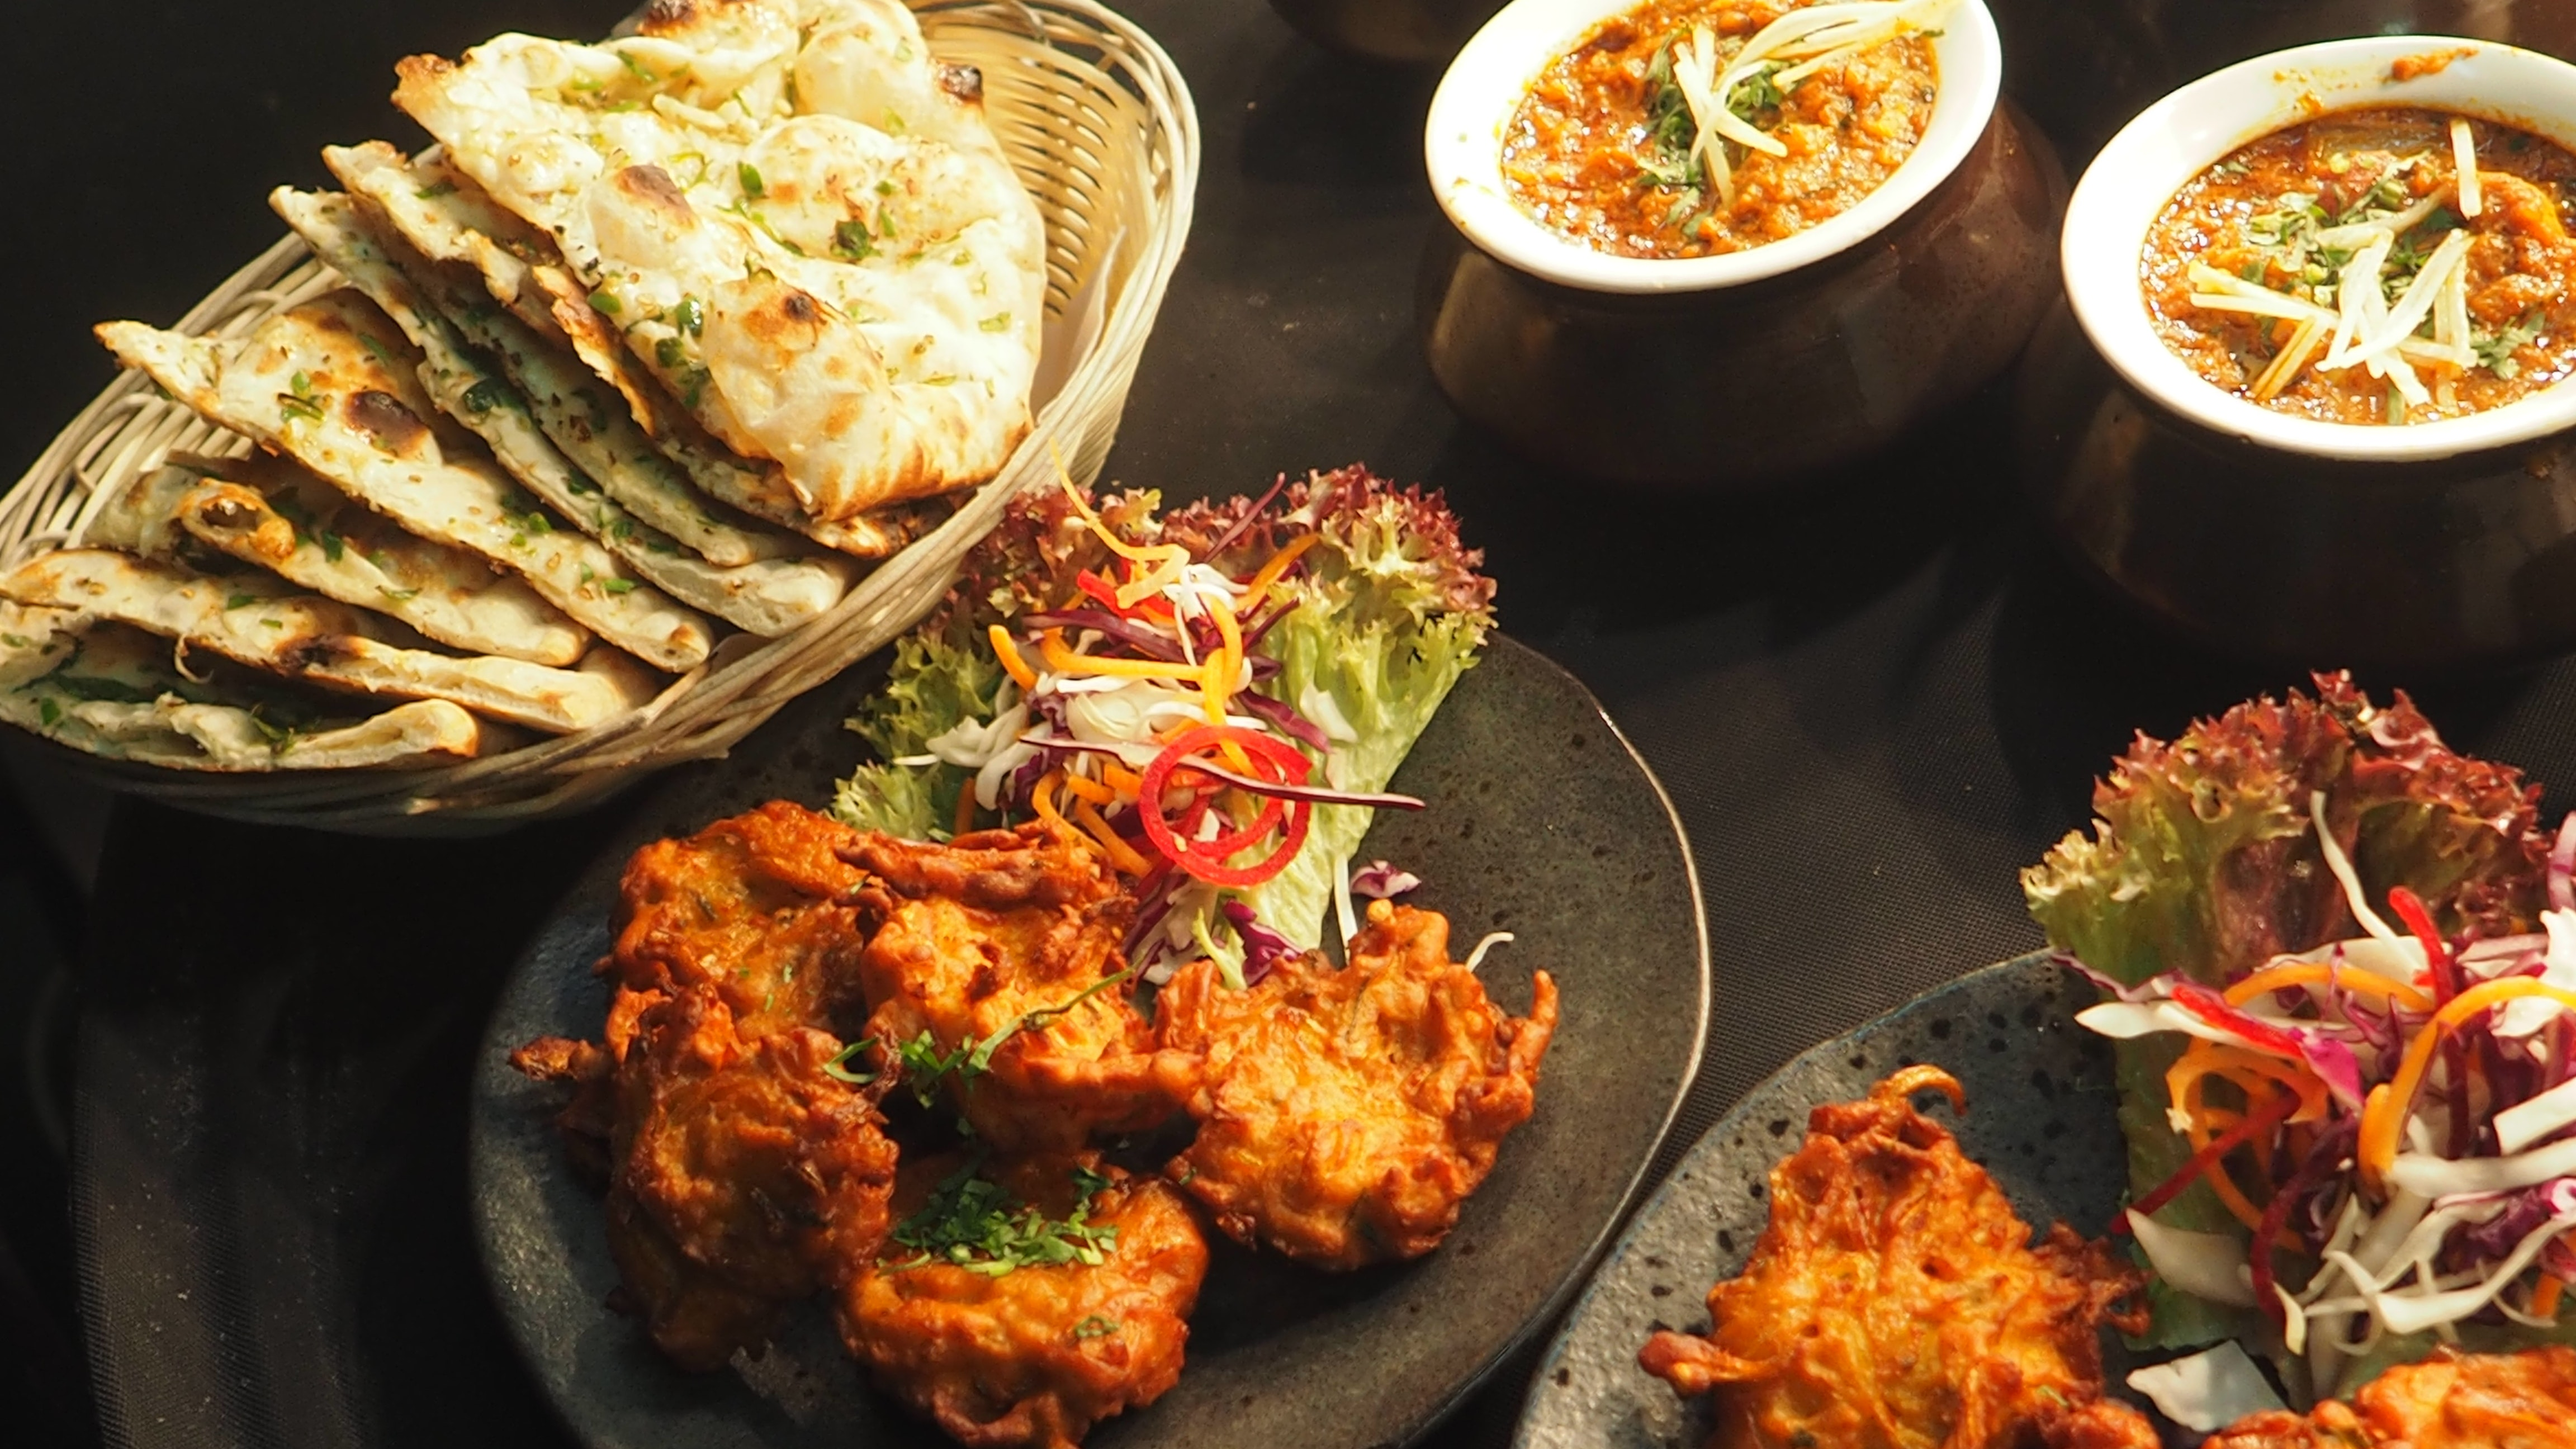 Assorted Fried Dish on Ceramic Plate & 1000+ Engaging Indian Food Photos · Pexels · Free Stock Photos